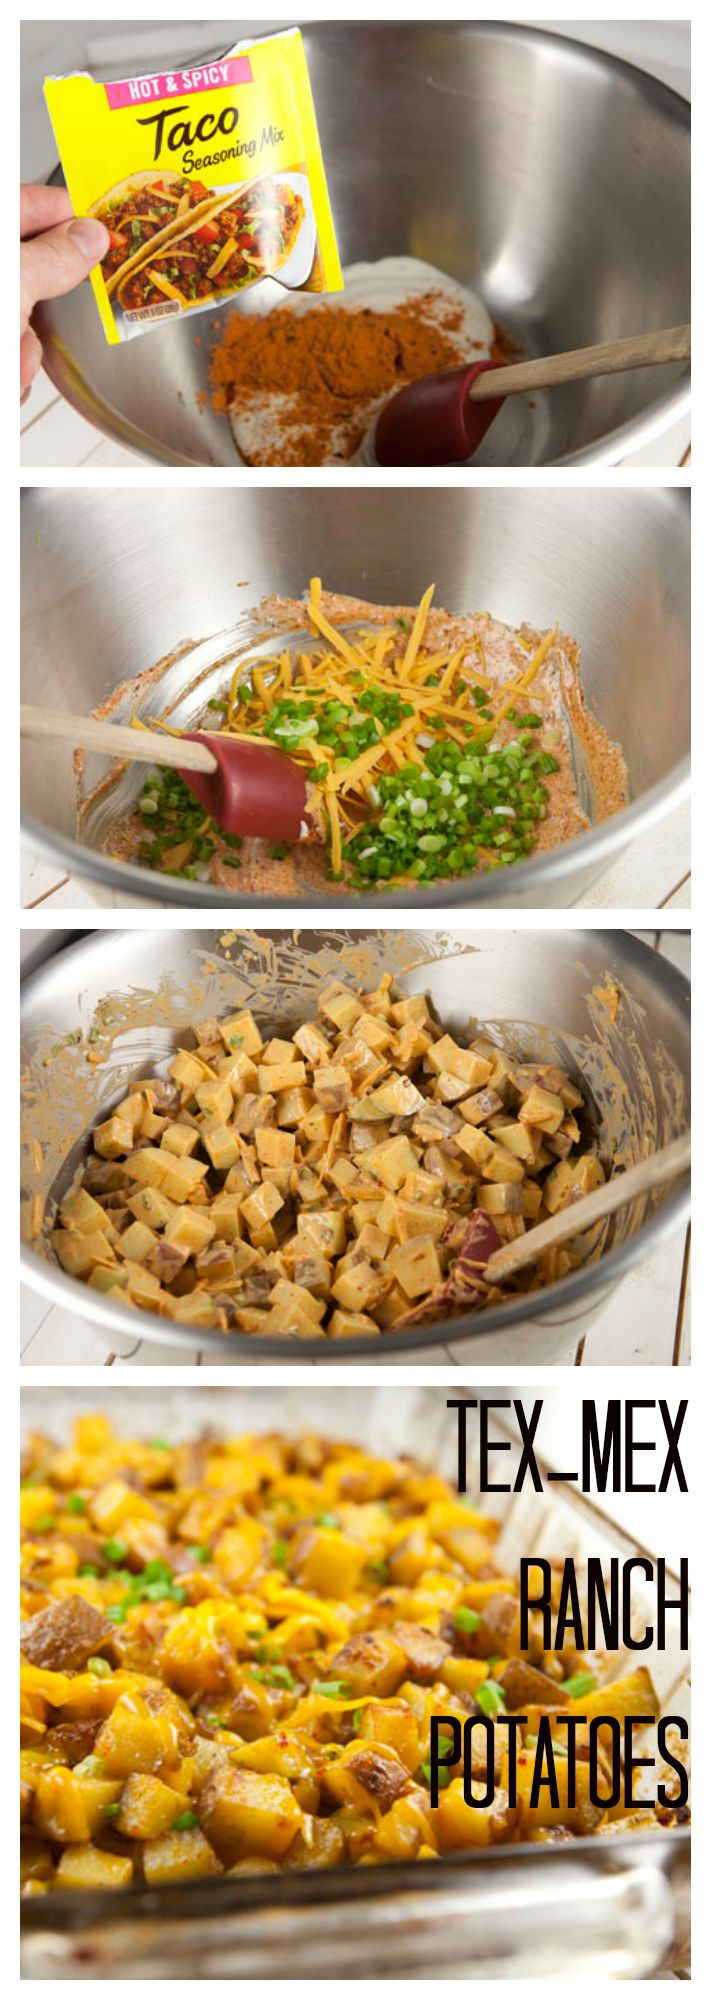 Tex-Mex Ranch Potatoes just add chicken use radishes or cauliflower instead.